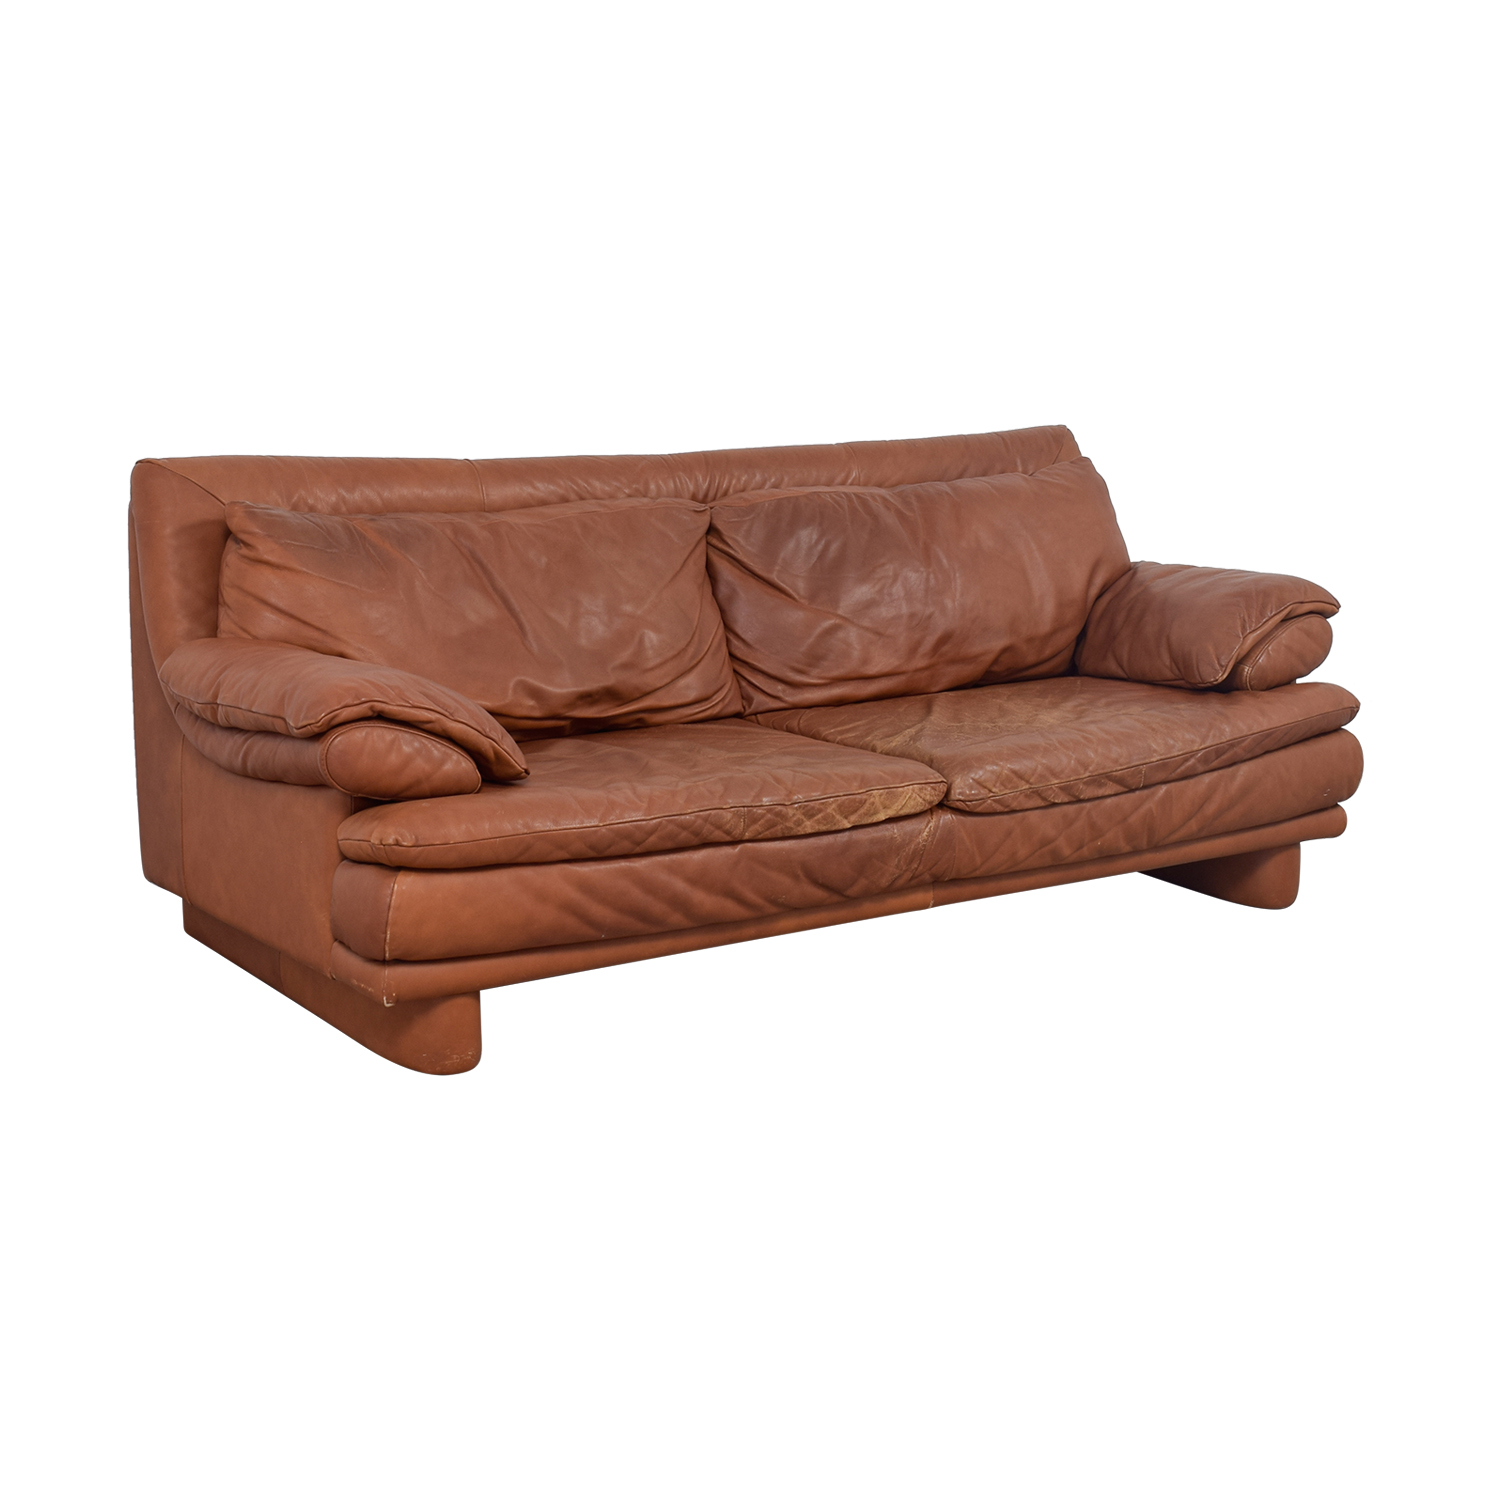 Maurice Villency Brown Leather Sofa